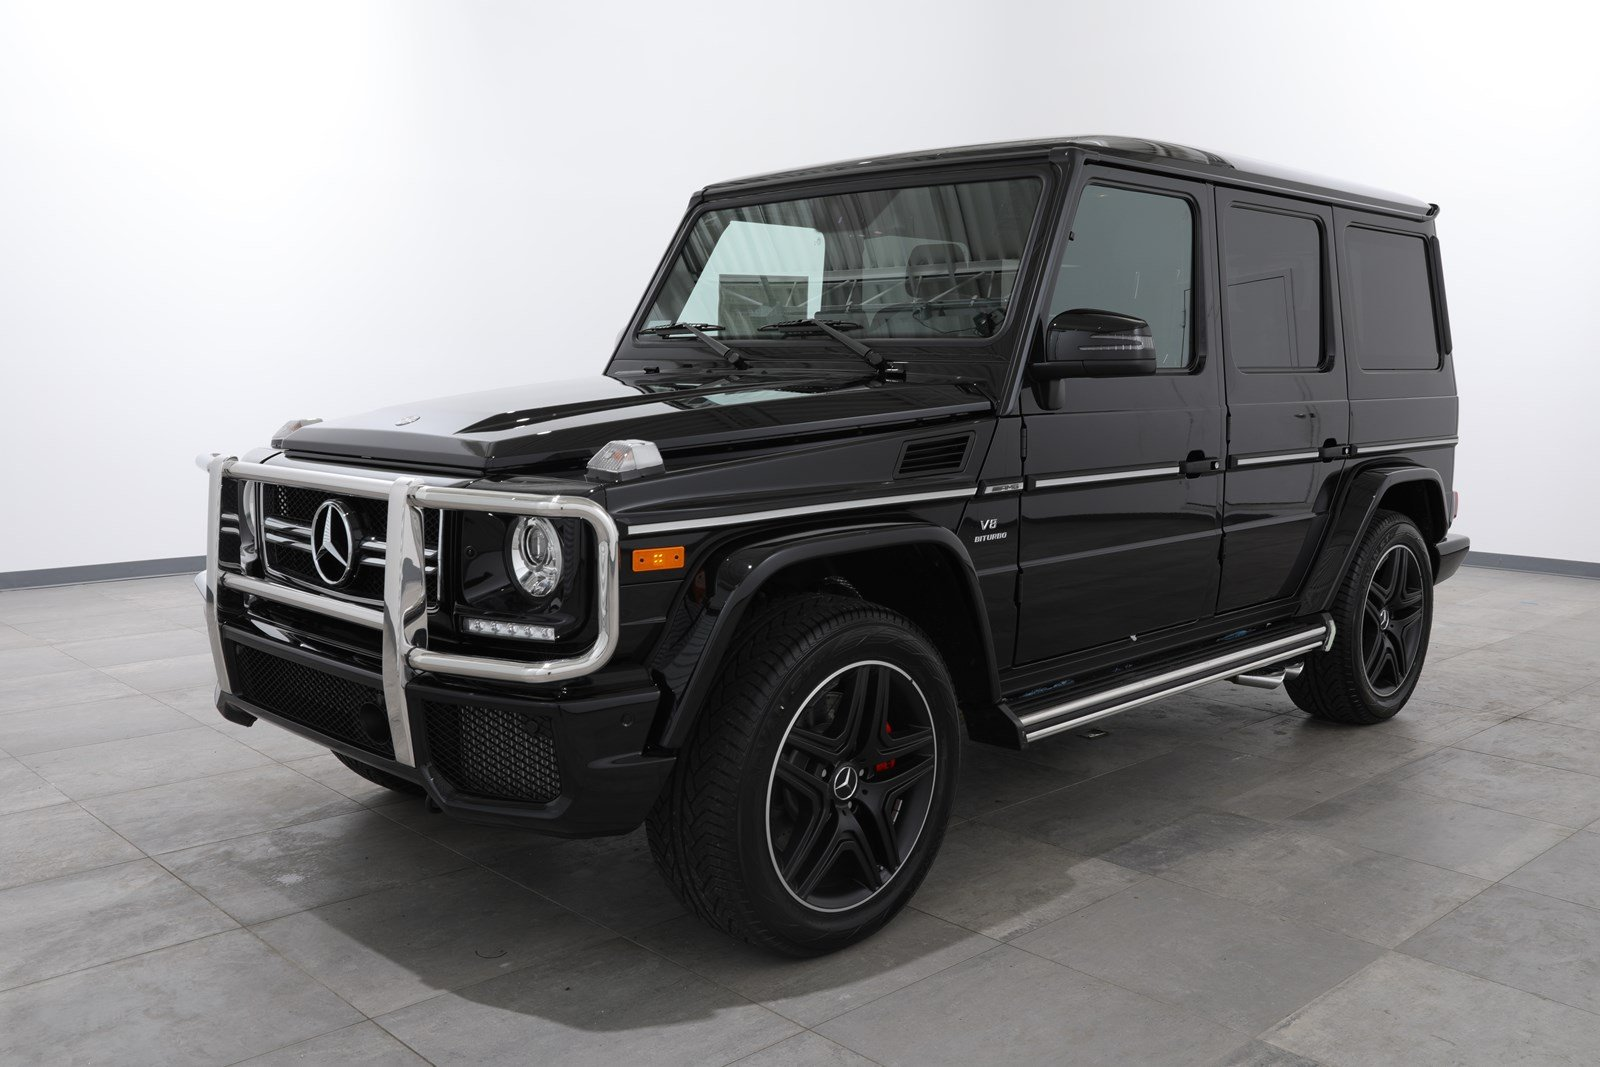 New 2018 mercedes benz g class amg g 63 suv suv in for Mercedes benz g class amg